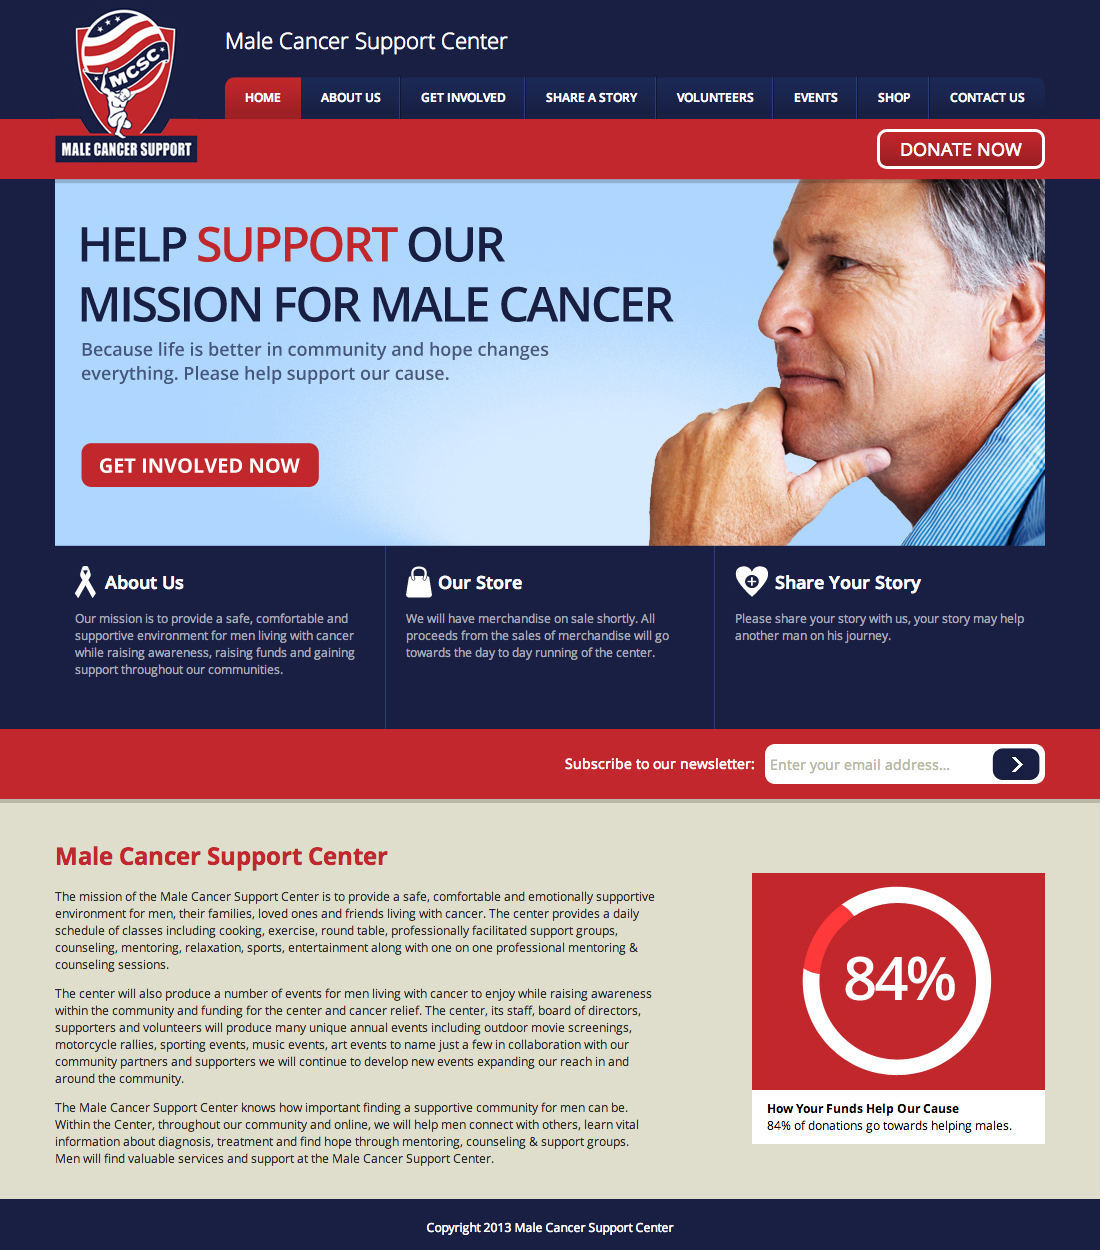 Male Cancer Support Center